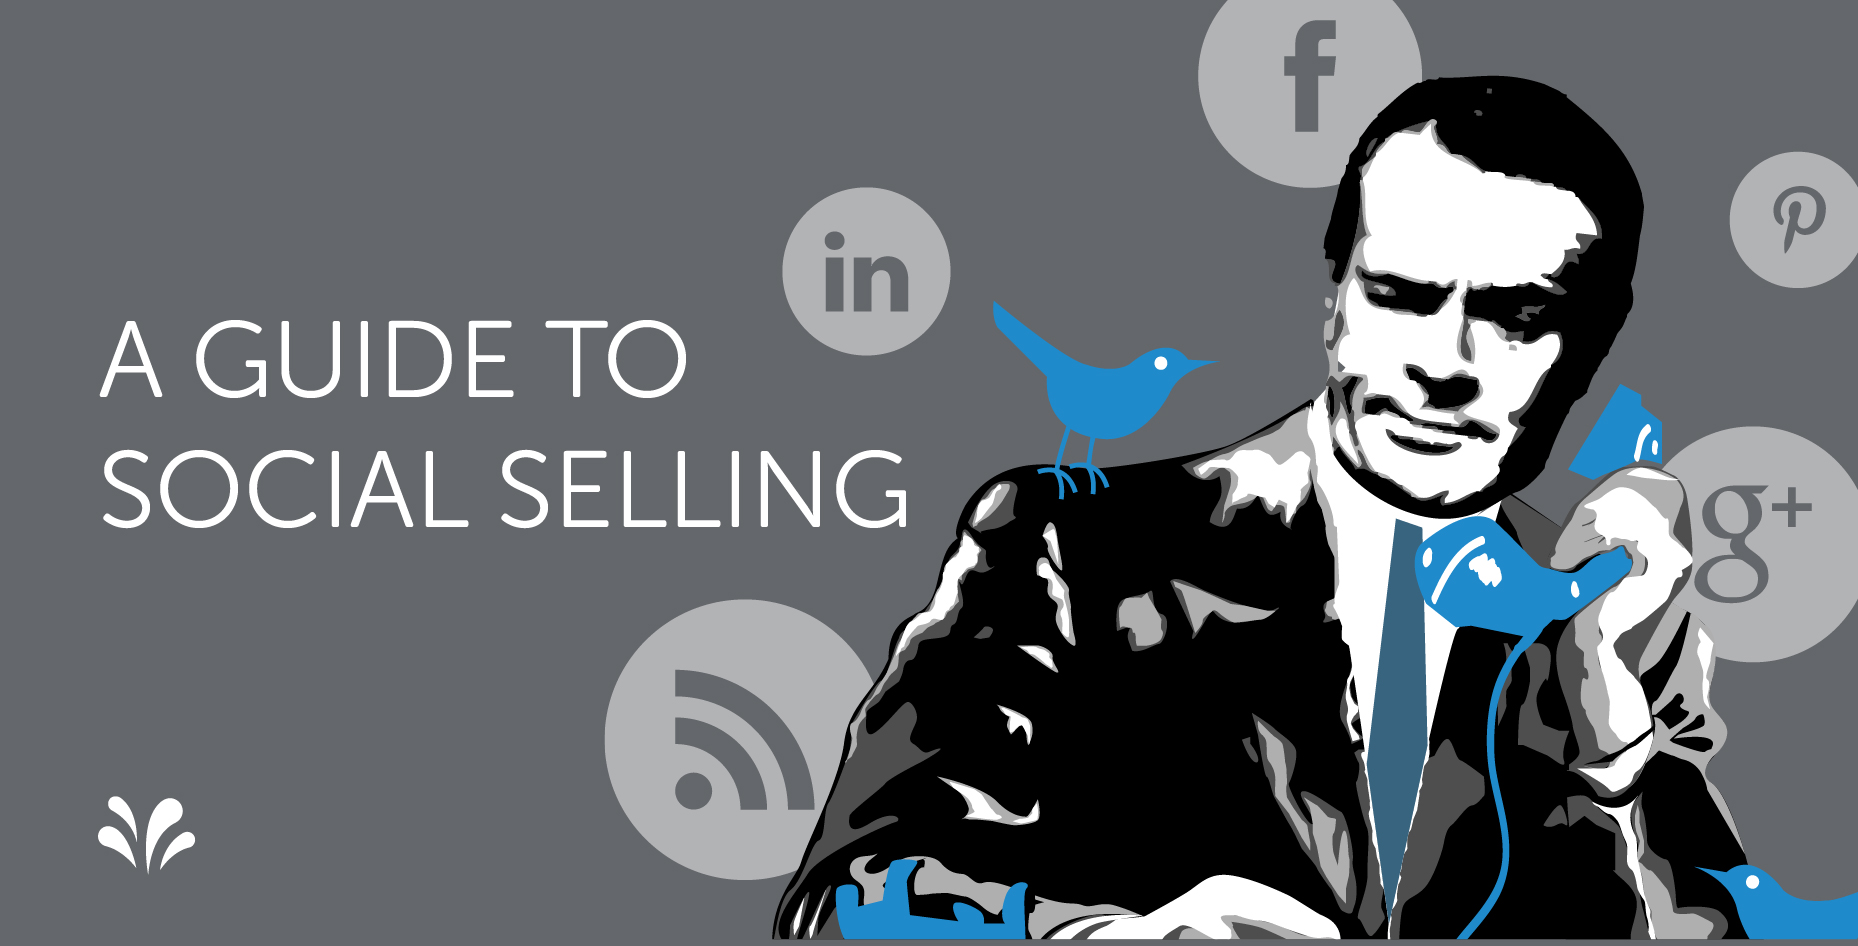 Top 7 benefits of social selling